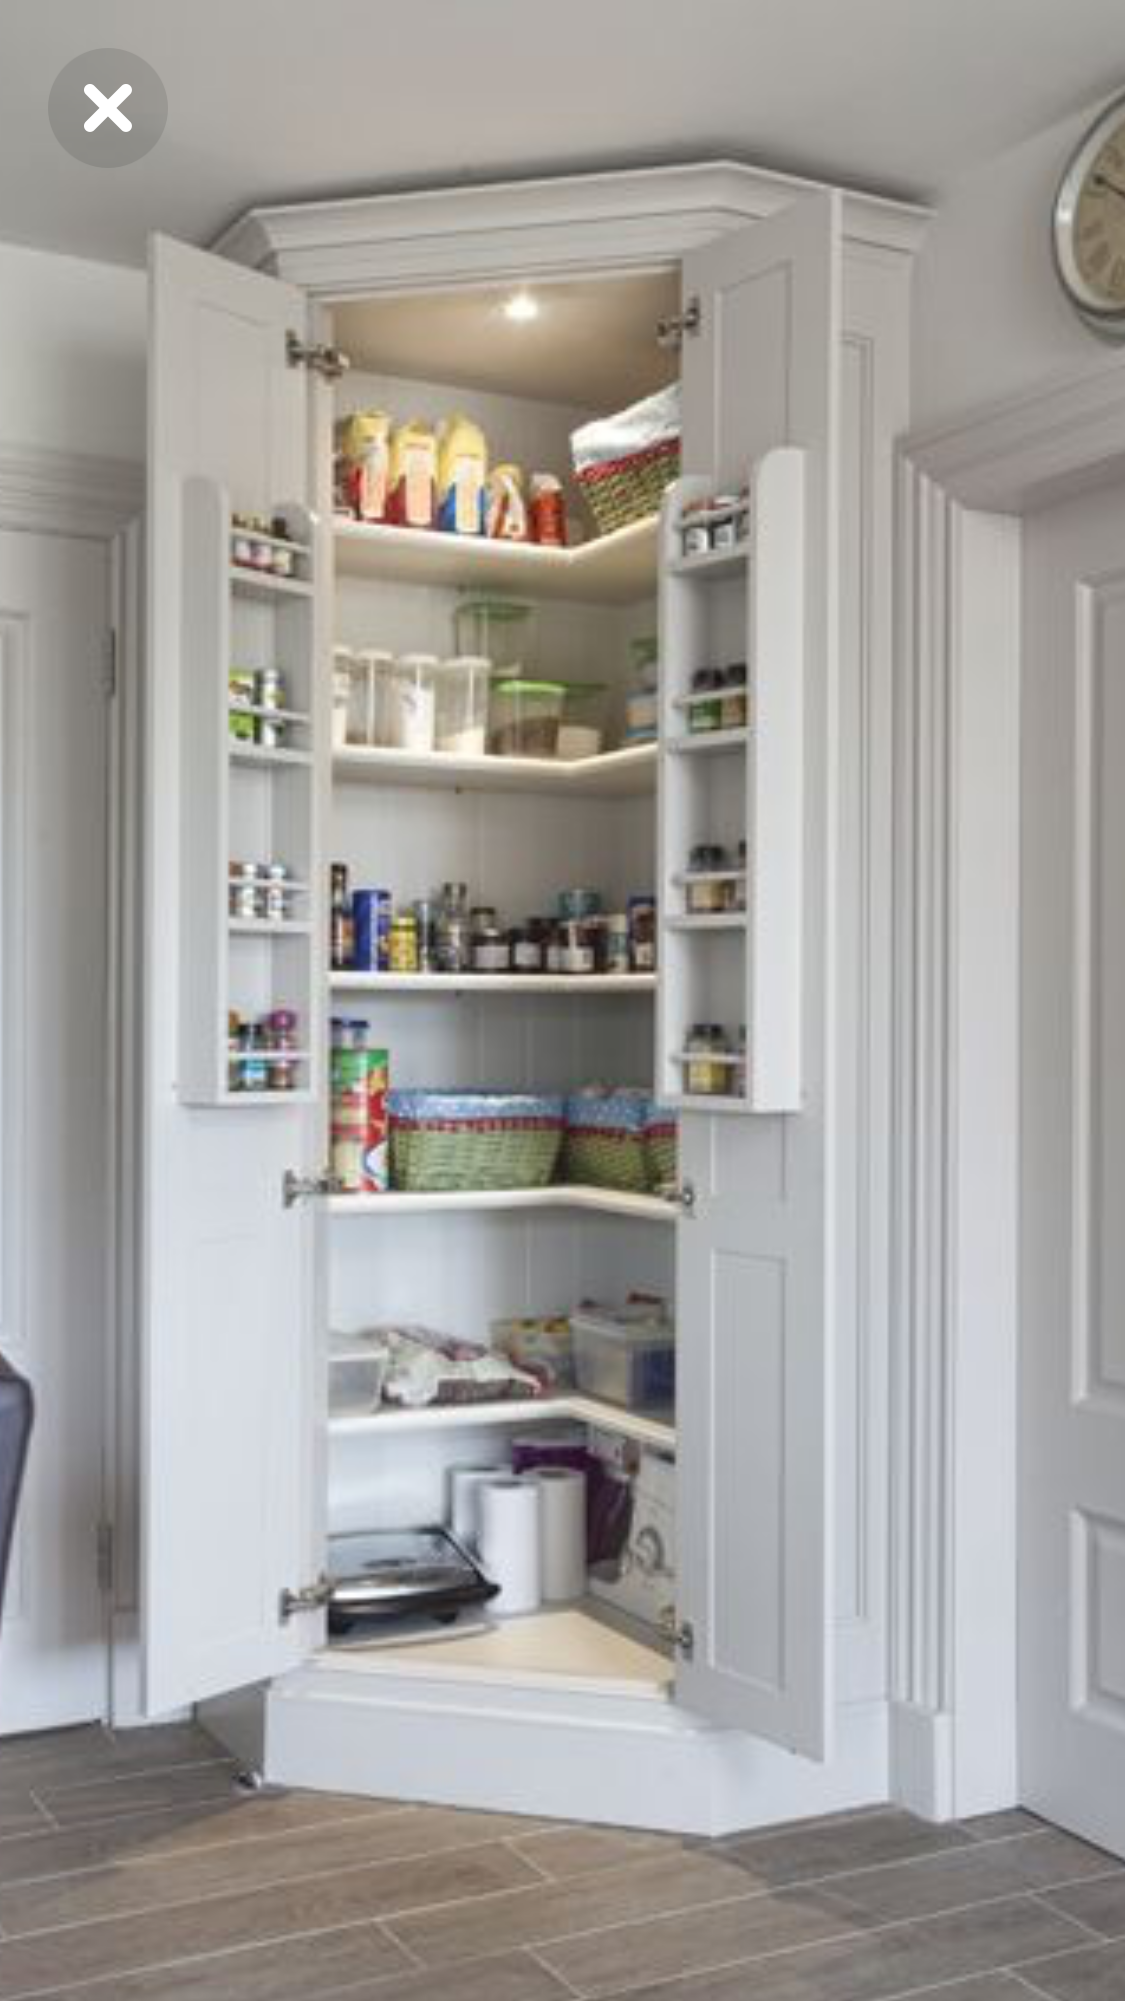 Pin By Joscelyn Marriott On Pantry Shelving Bespoke Kitchen Cabinets Kitchen Pantry Cupboard Pantry Design